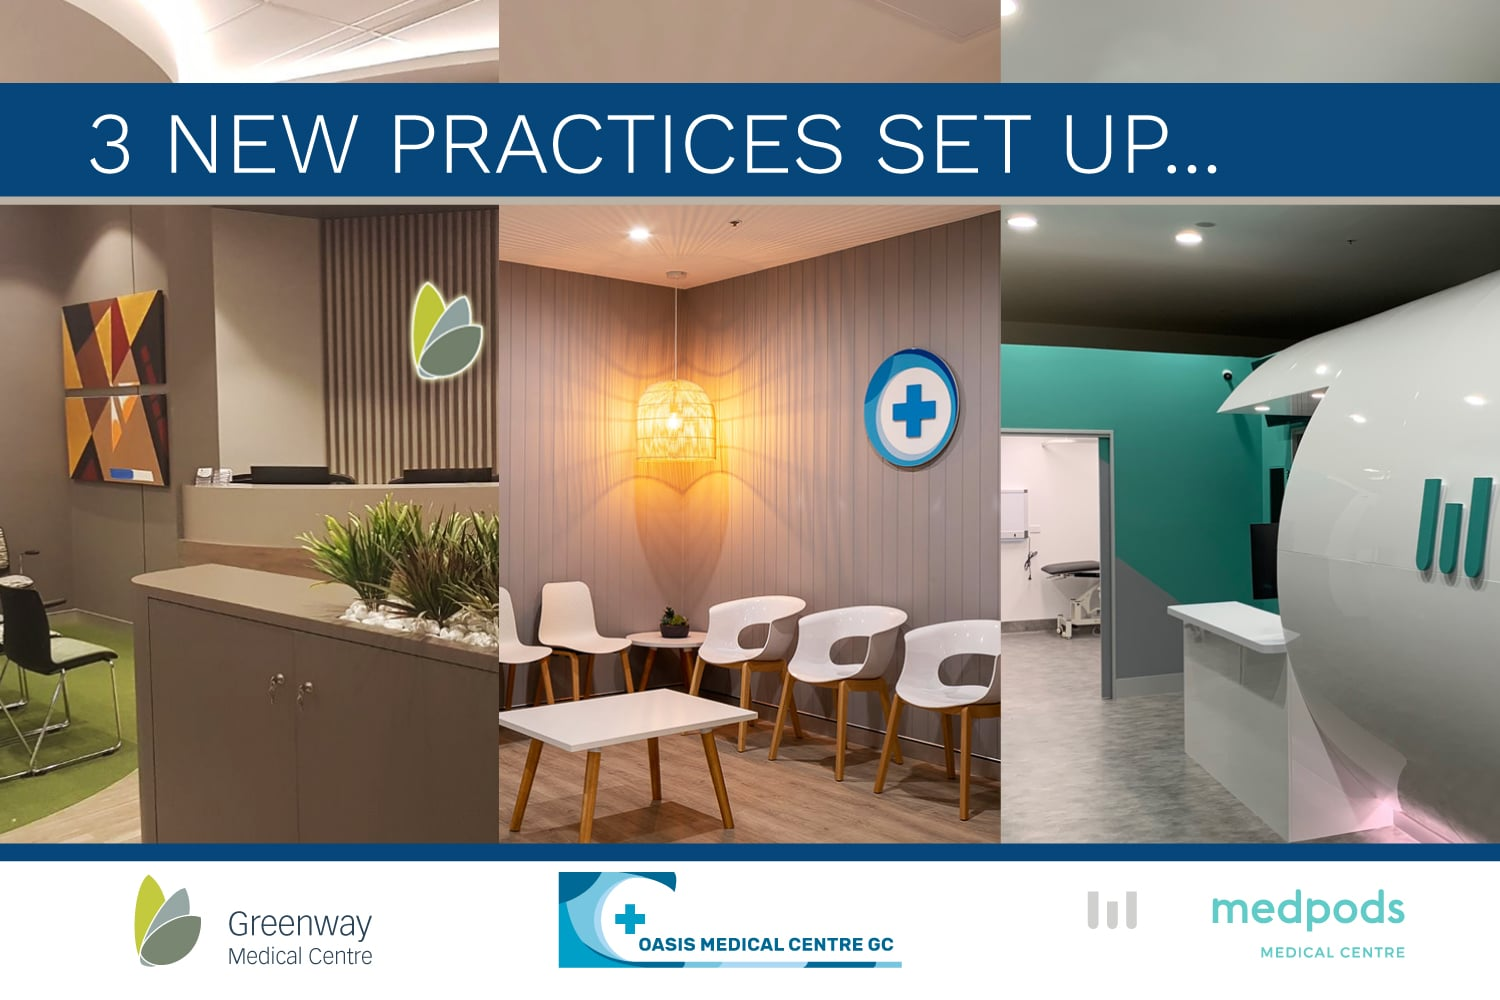 Medical Practice Setups – The Latest GP Medical Centres